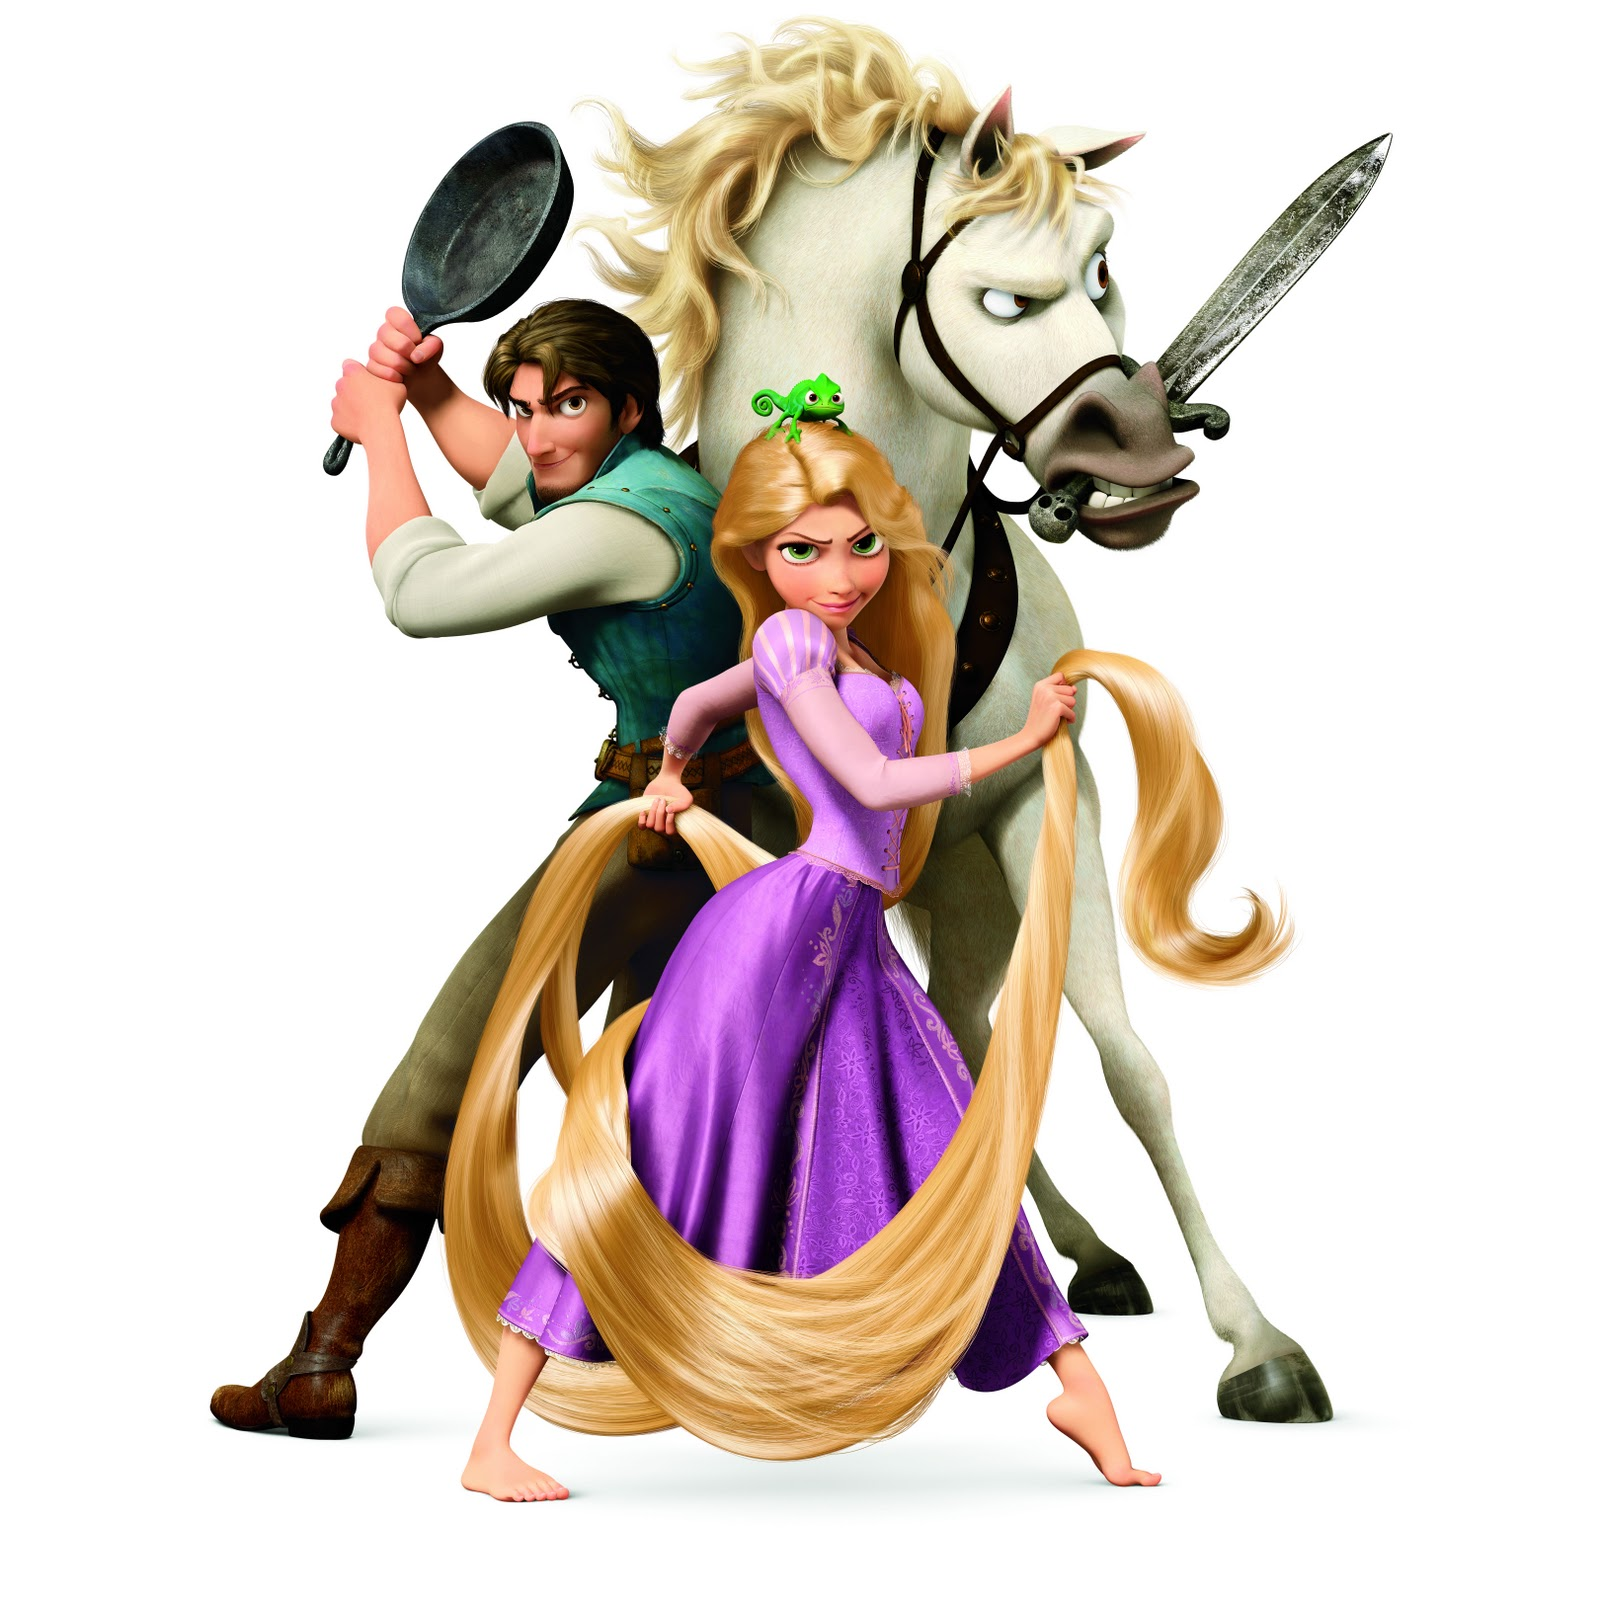 Rapunzel tangled film review